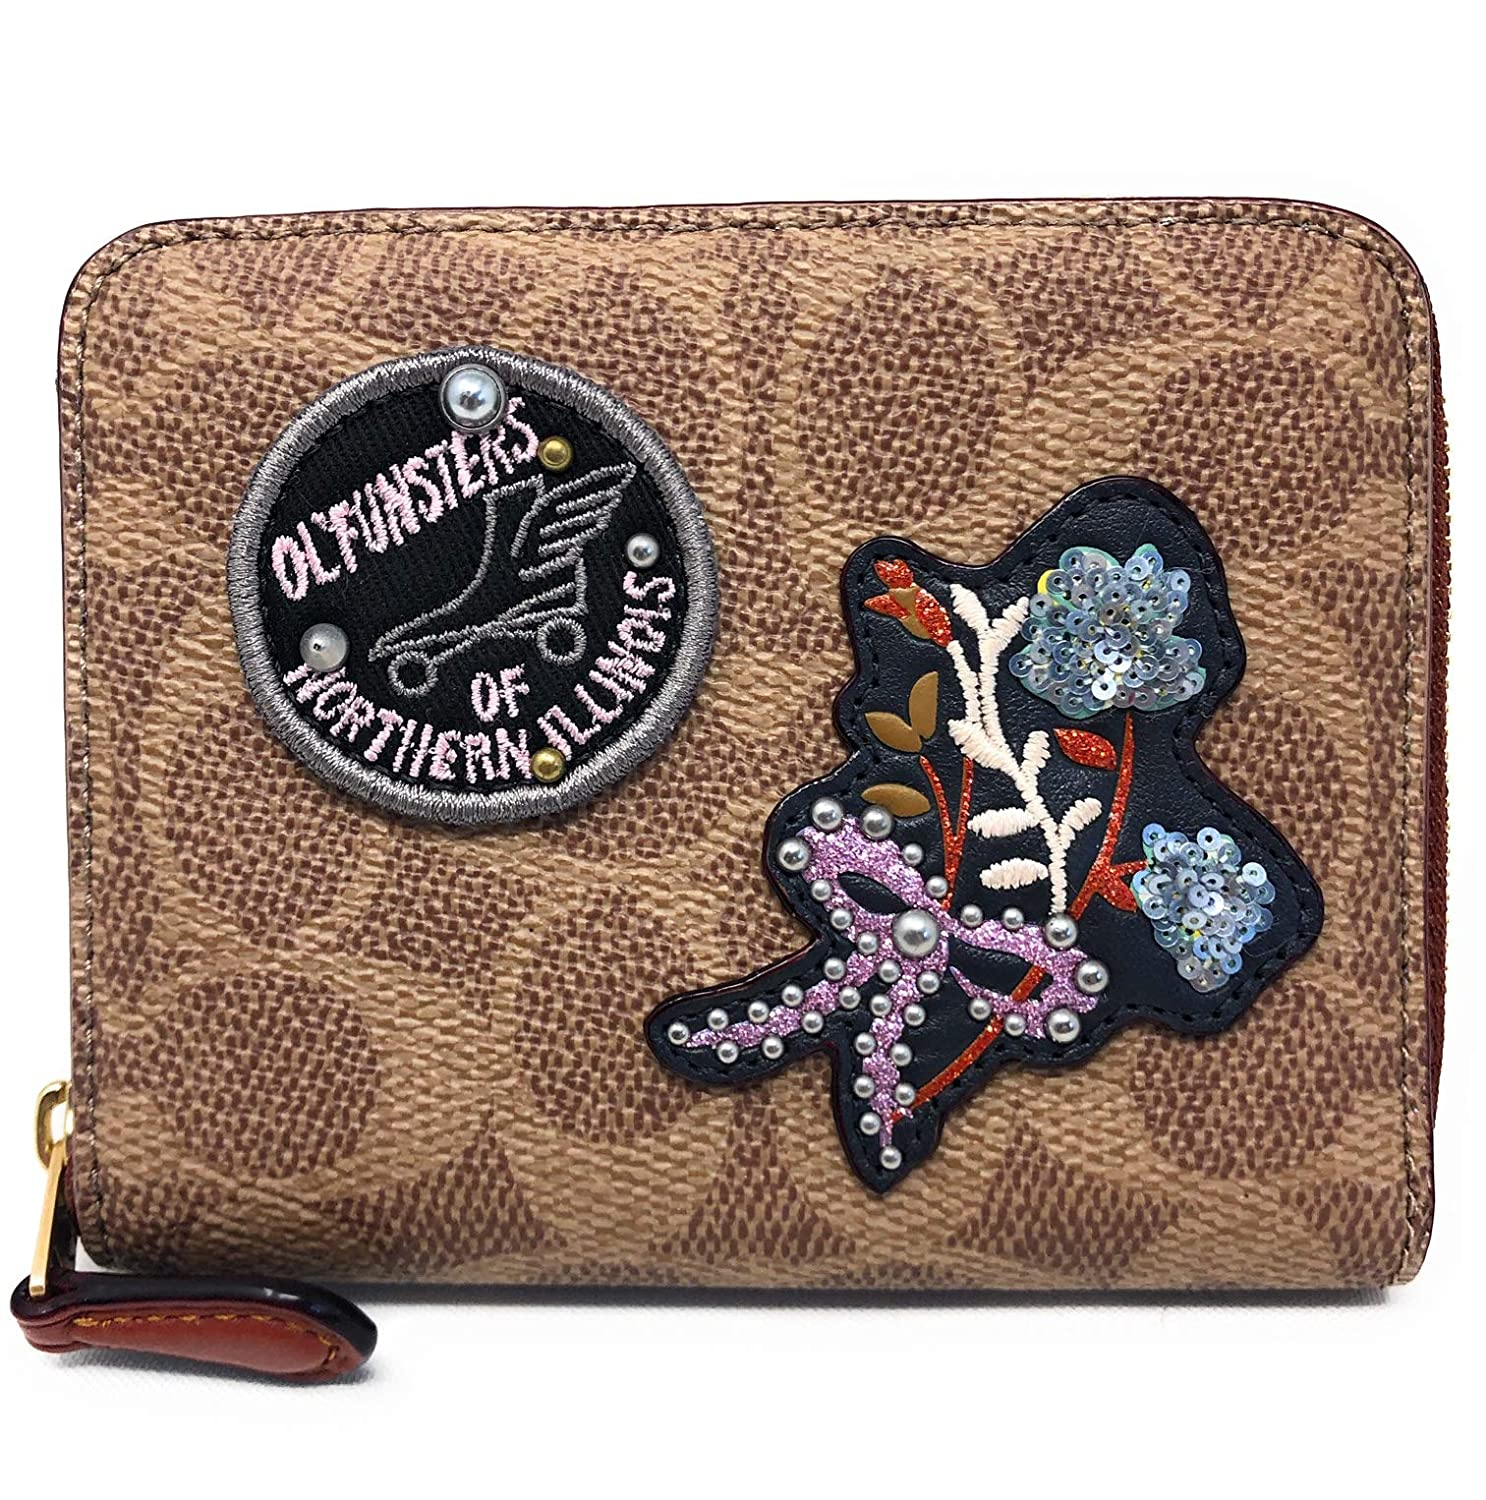 7ed2d94926f4 Coach Small Zip Around Wallet In Signature Canvas With Patches B4/RU at  Amazon Women's Clothing store: